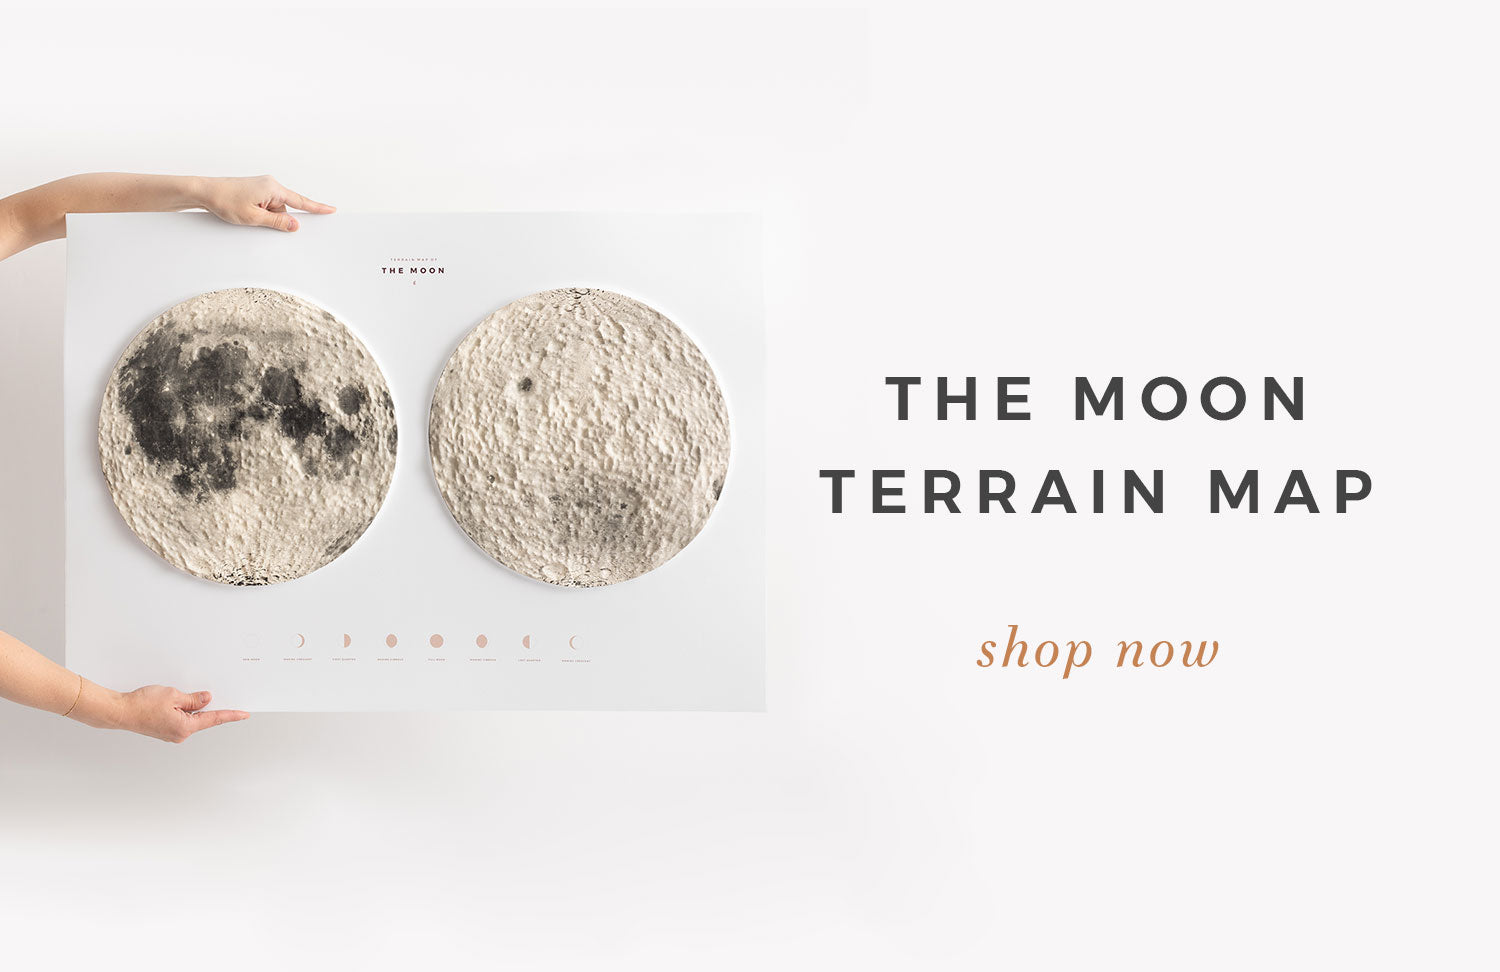 Terrain Map of the Moon by Letterfolk